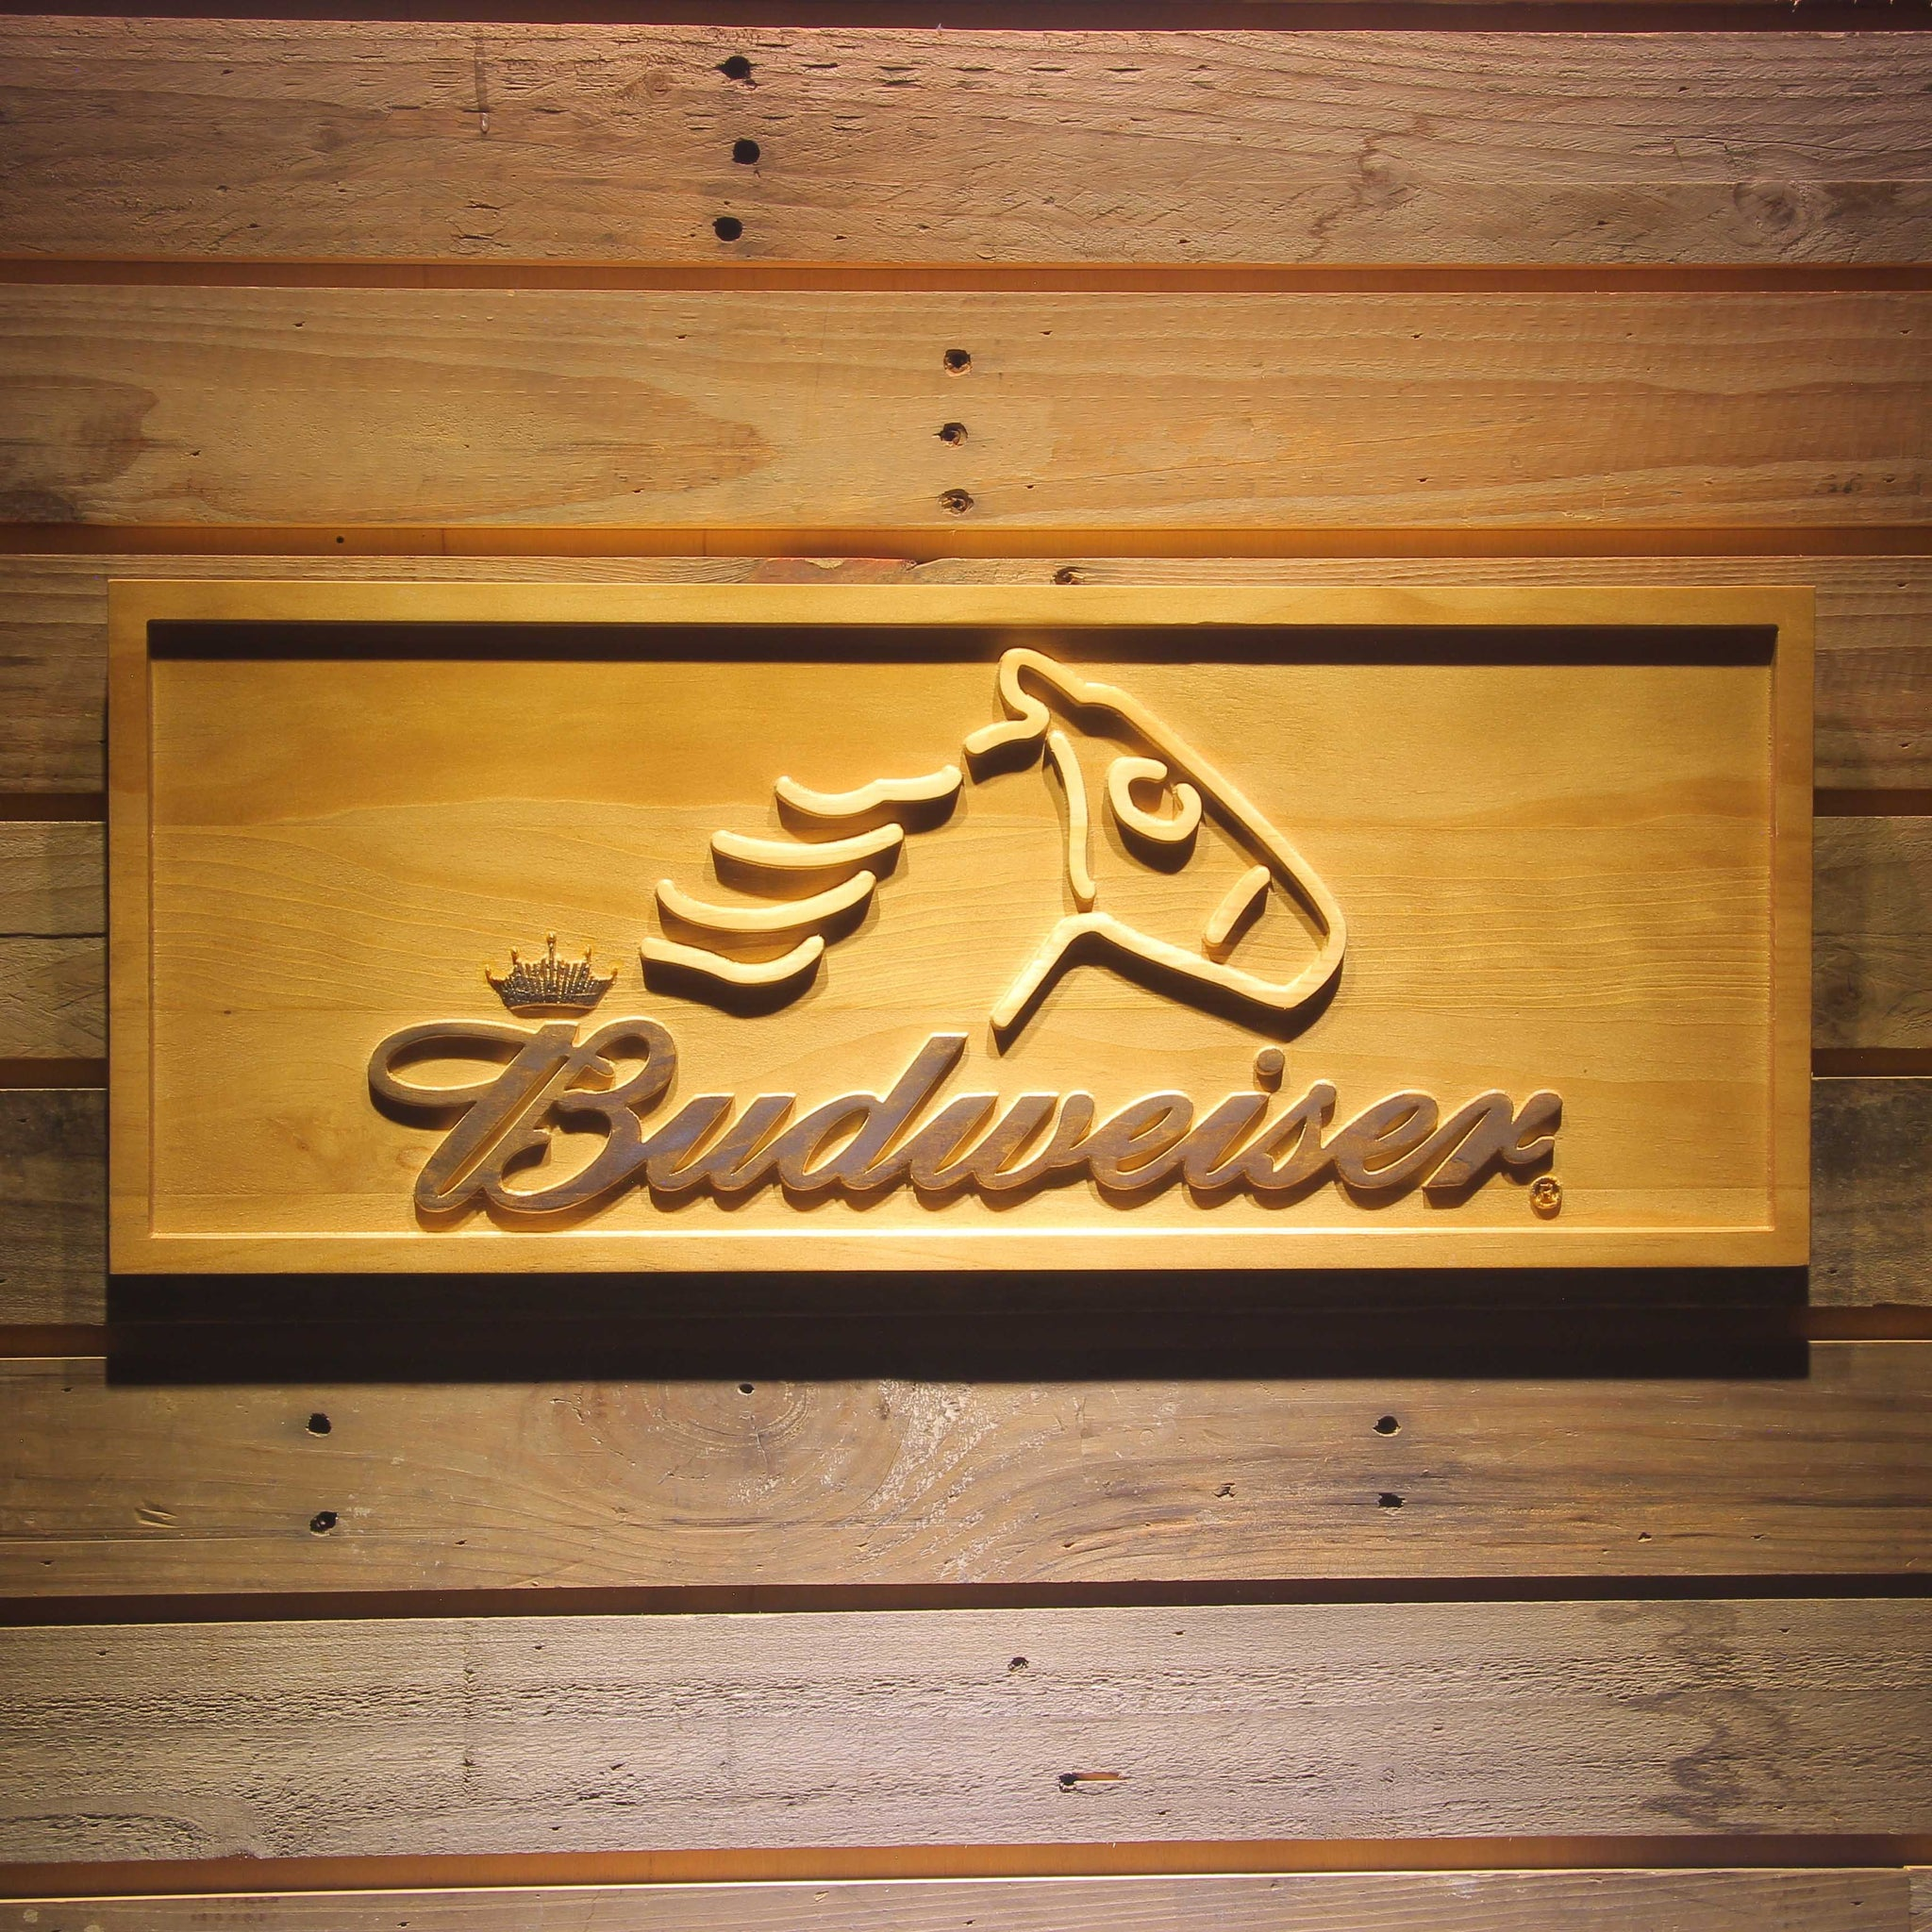 Budweiser Horse Head Beer 3D Wooden Bar Sign